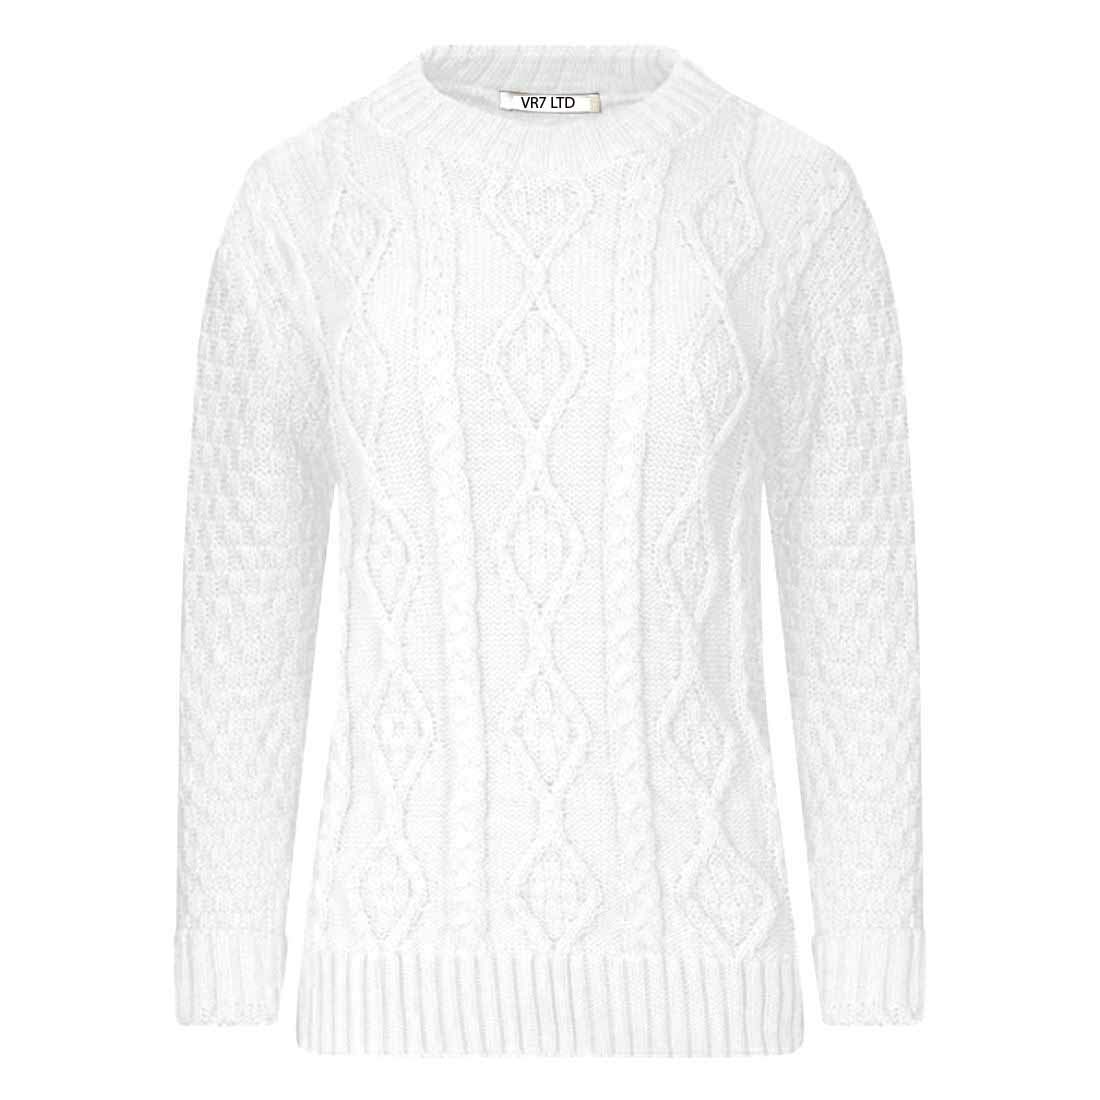 VR7 New Ladies Long Sleeve Chunky Cable Knitted Jumper Crew Neck Winter Sweater Top Size 8-18